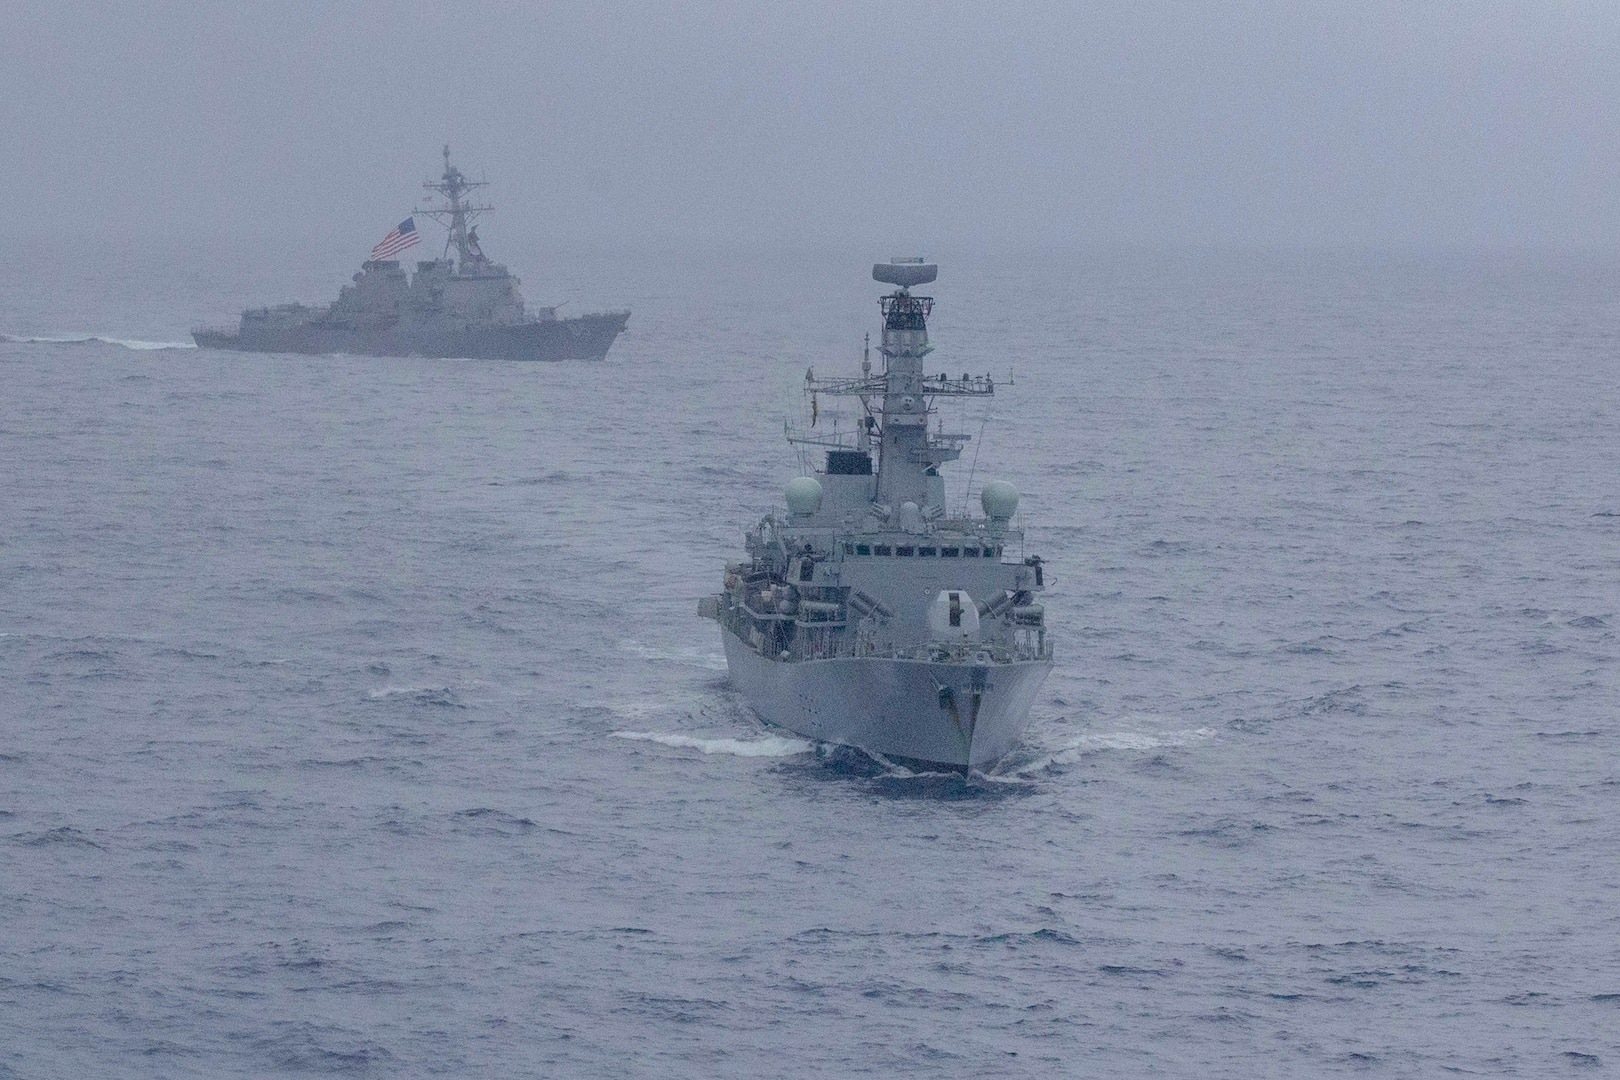 American, British Navies Sail together in South China Sea